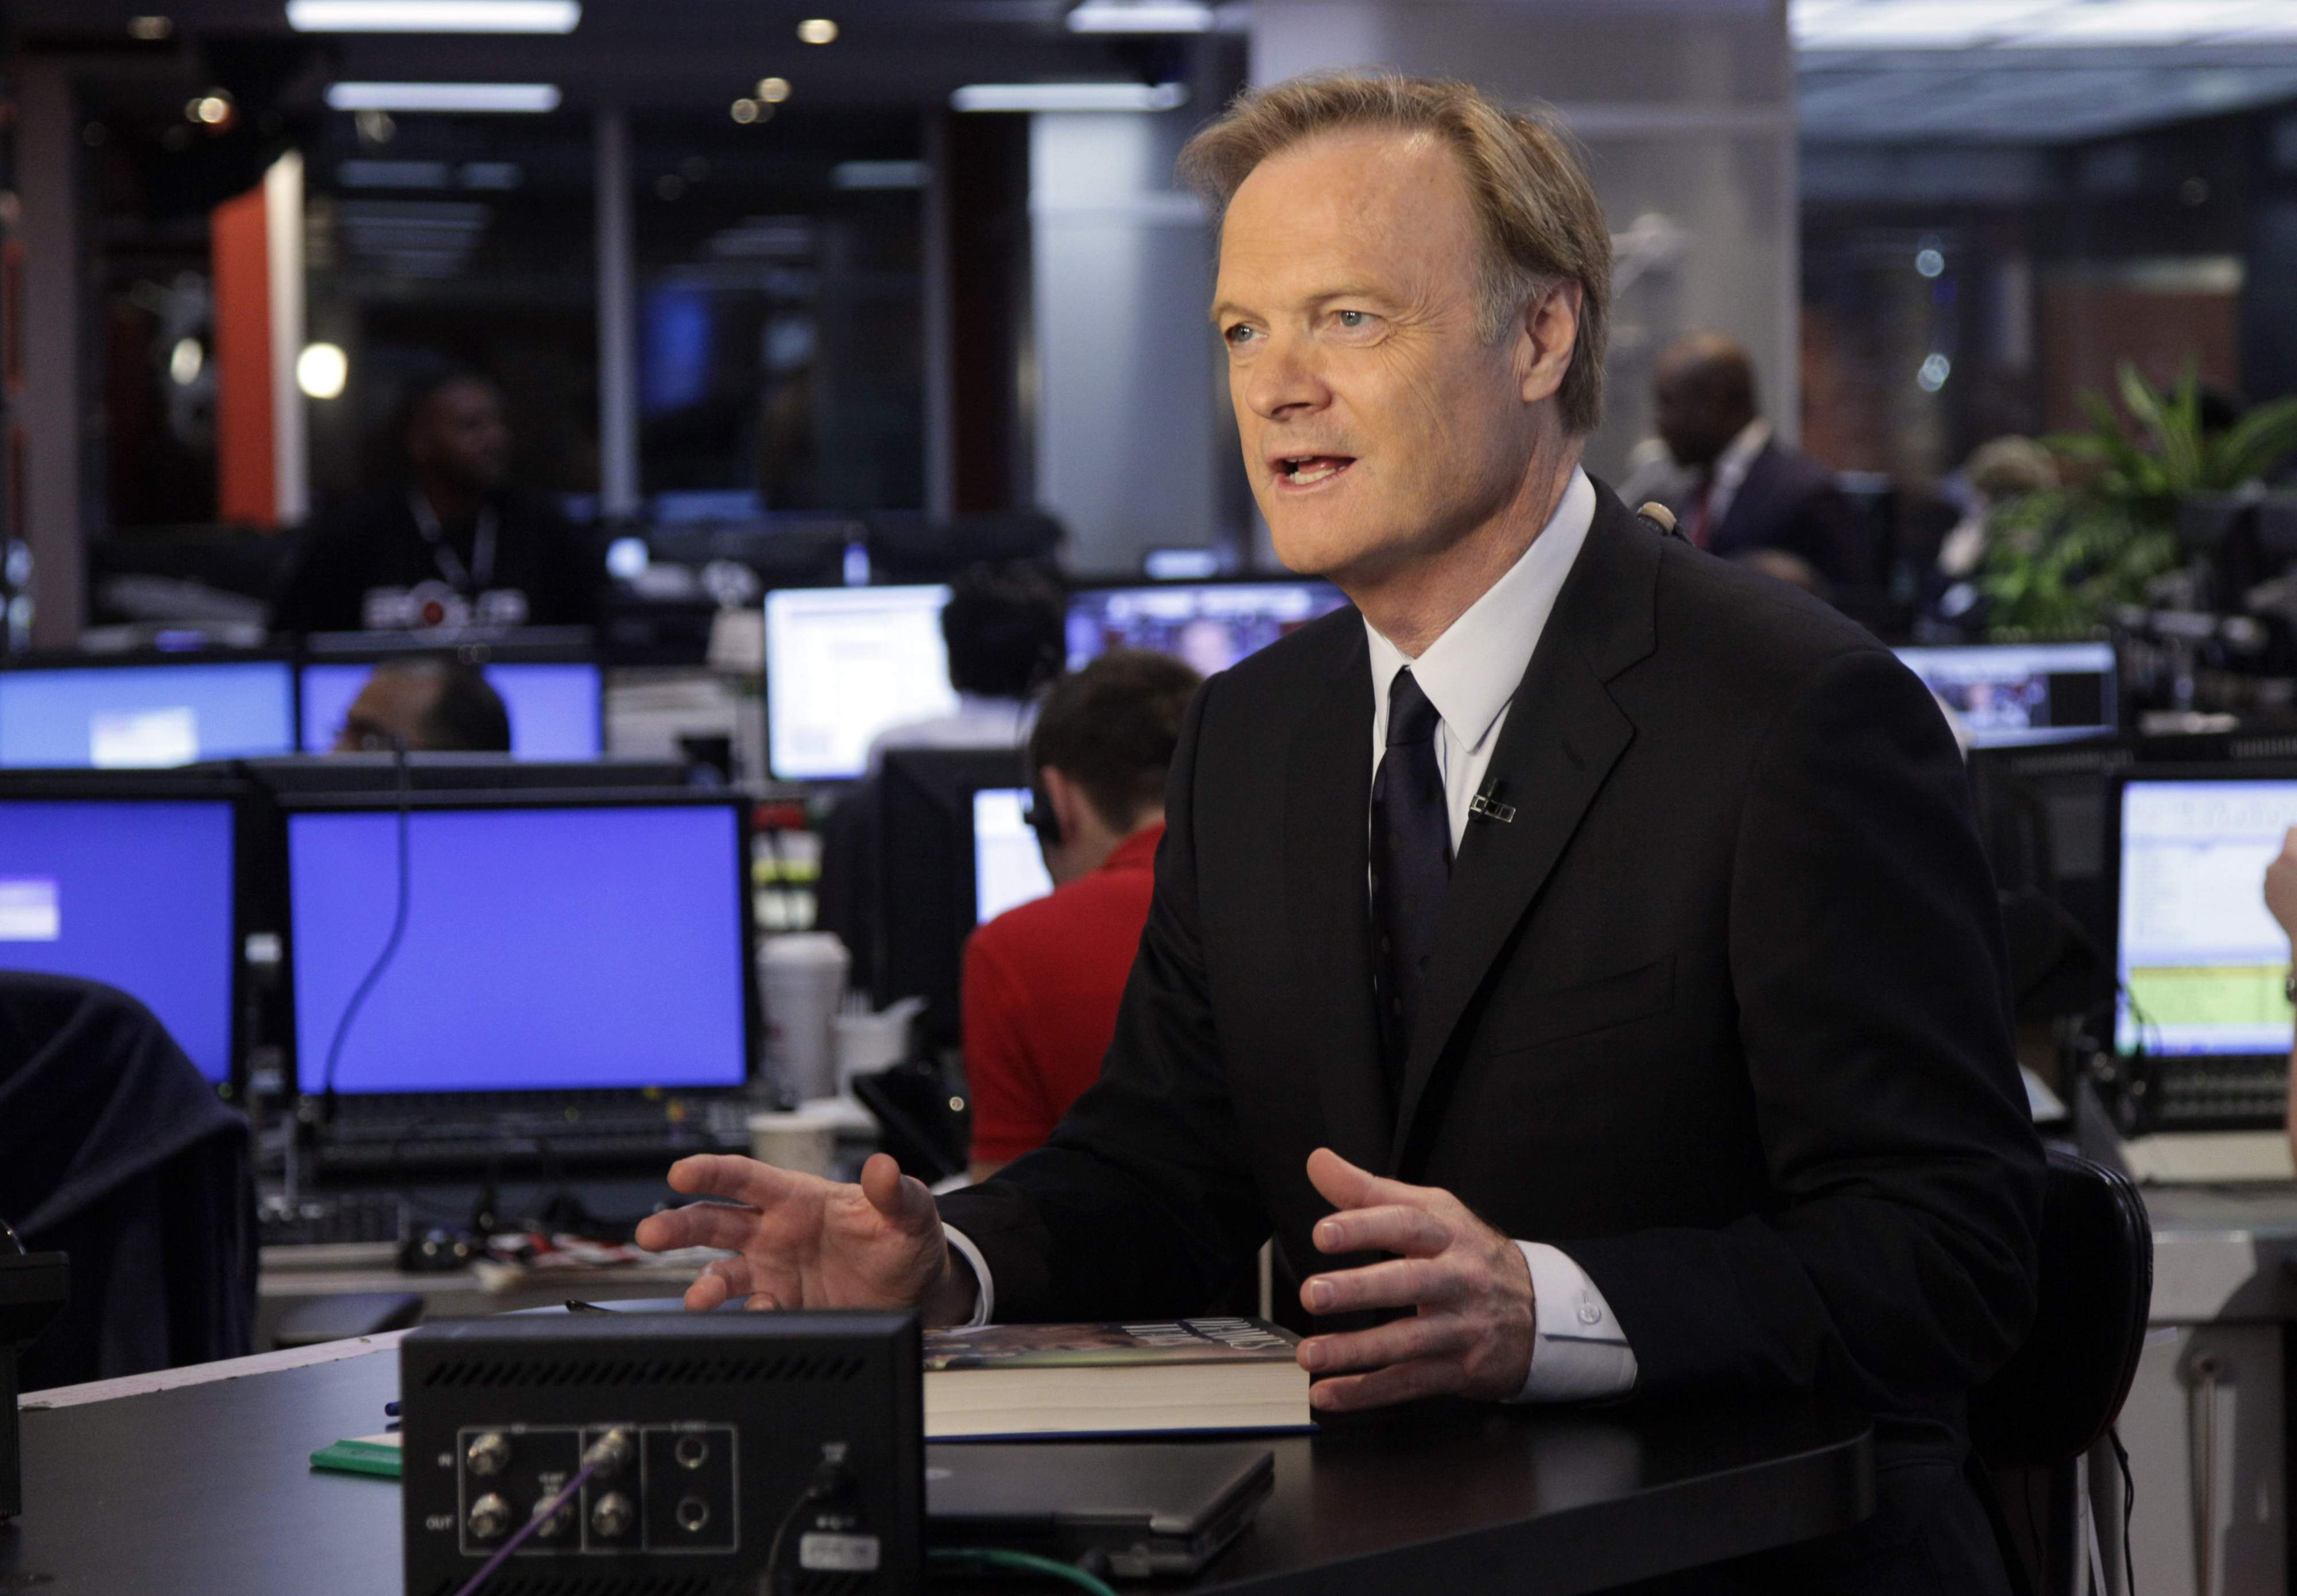 Msnbc HD Wallpapers | Hd Wallpapers